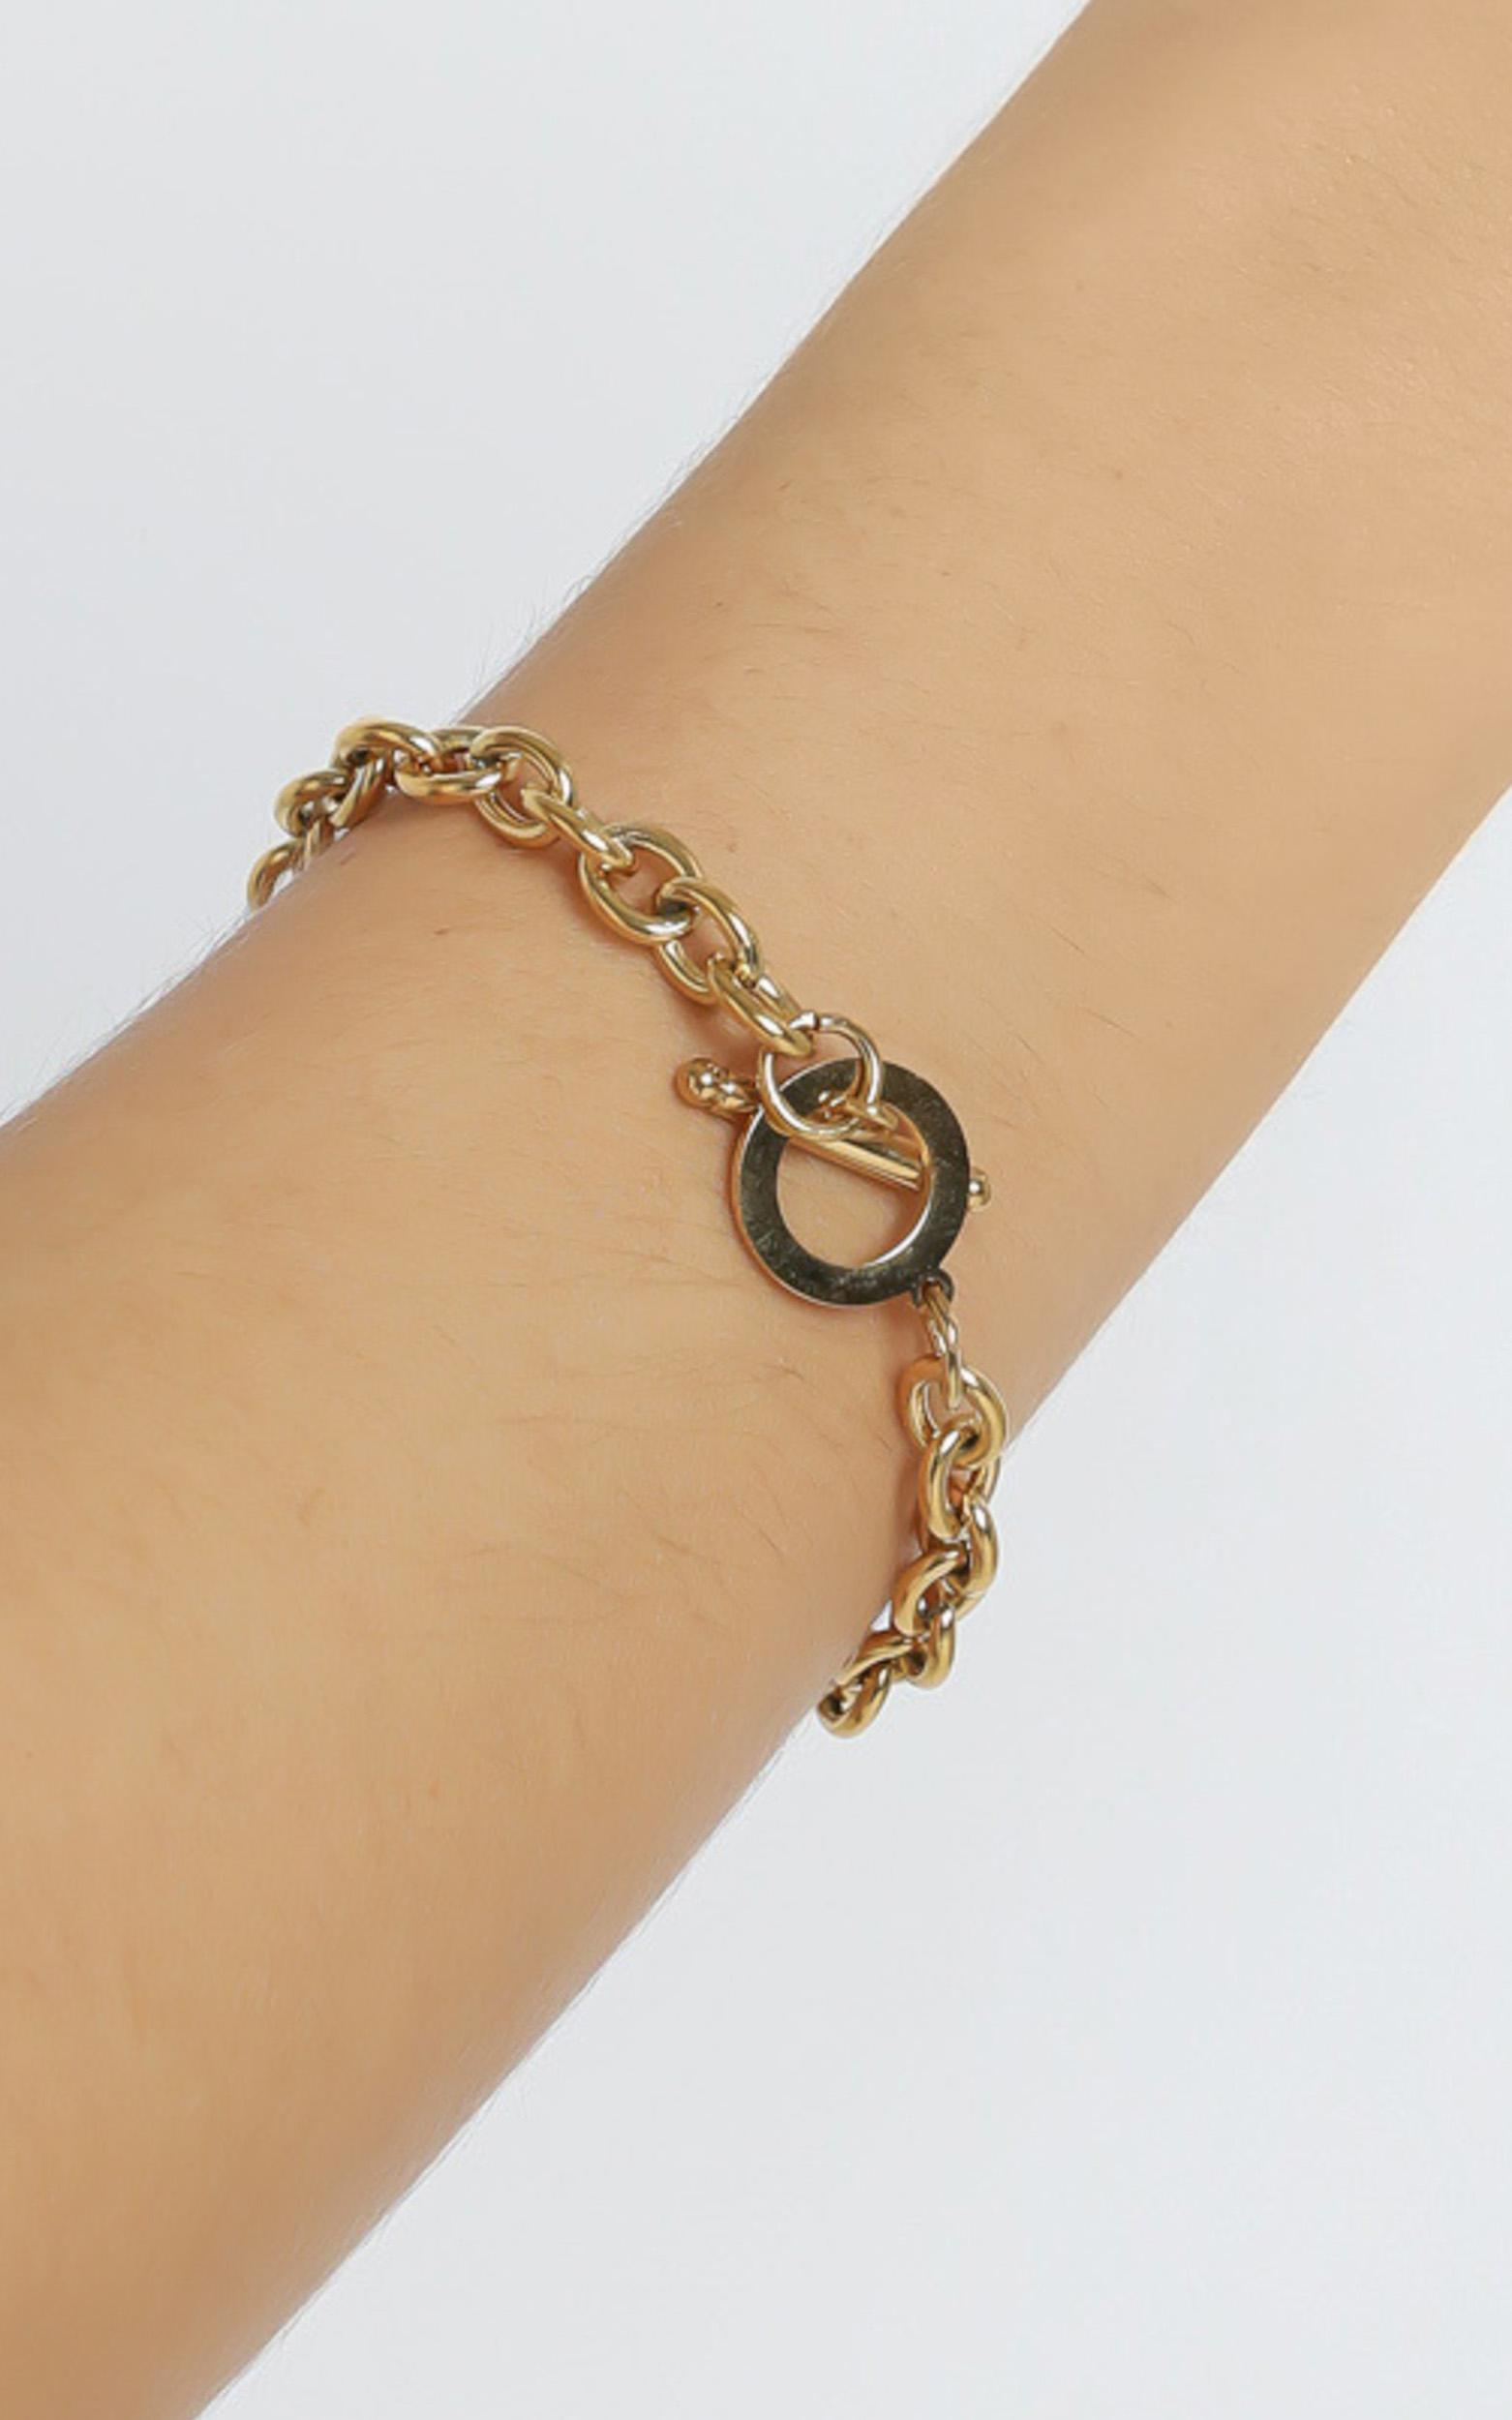 Sazan Bracelet in Gold, , hi-res image number null